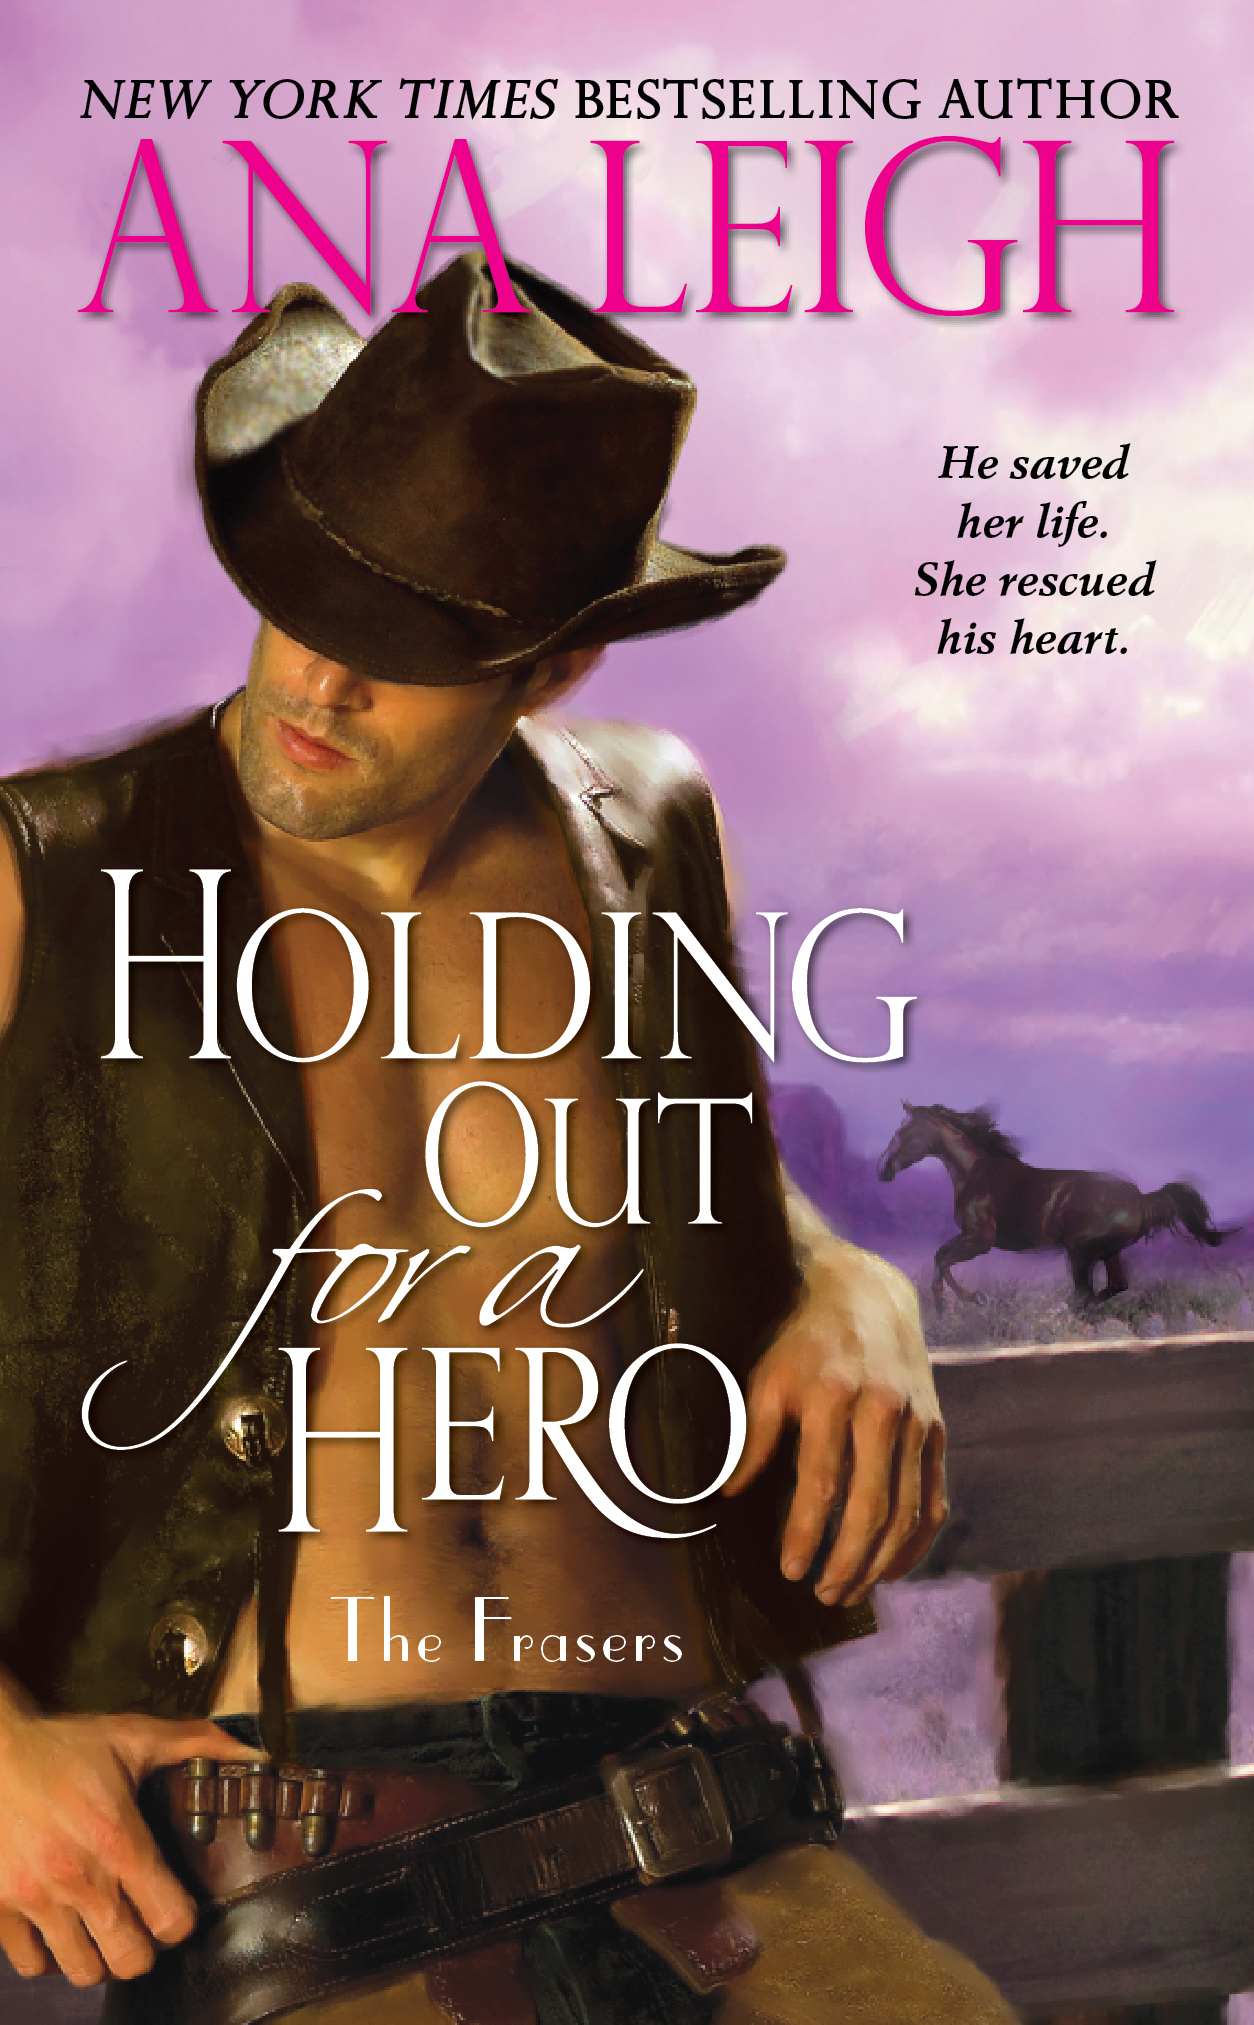 Book Cover Image (jpg): Holding Out For A Hero Ebook 9781439163429